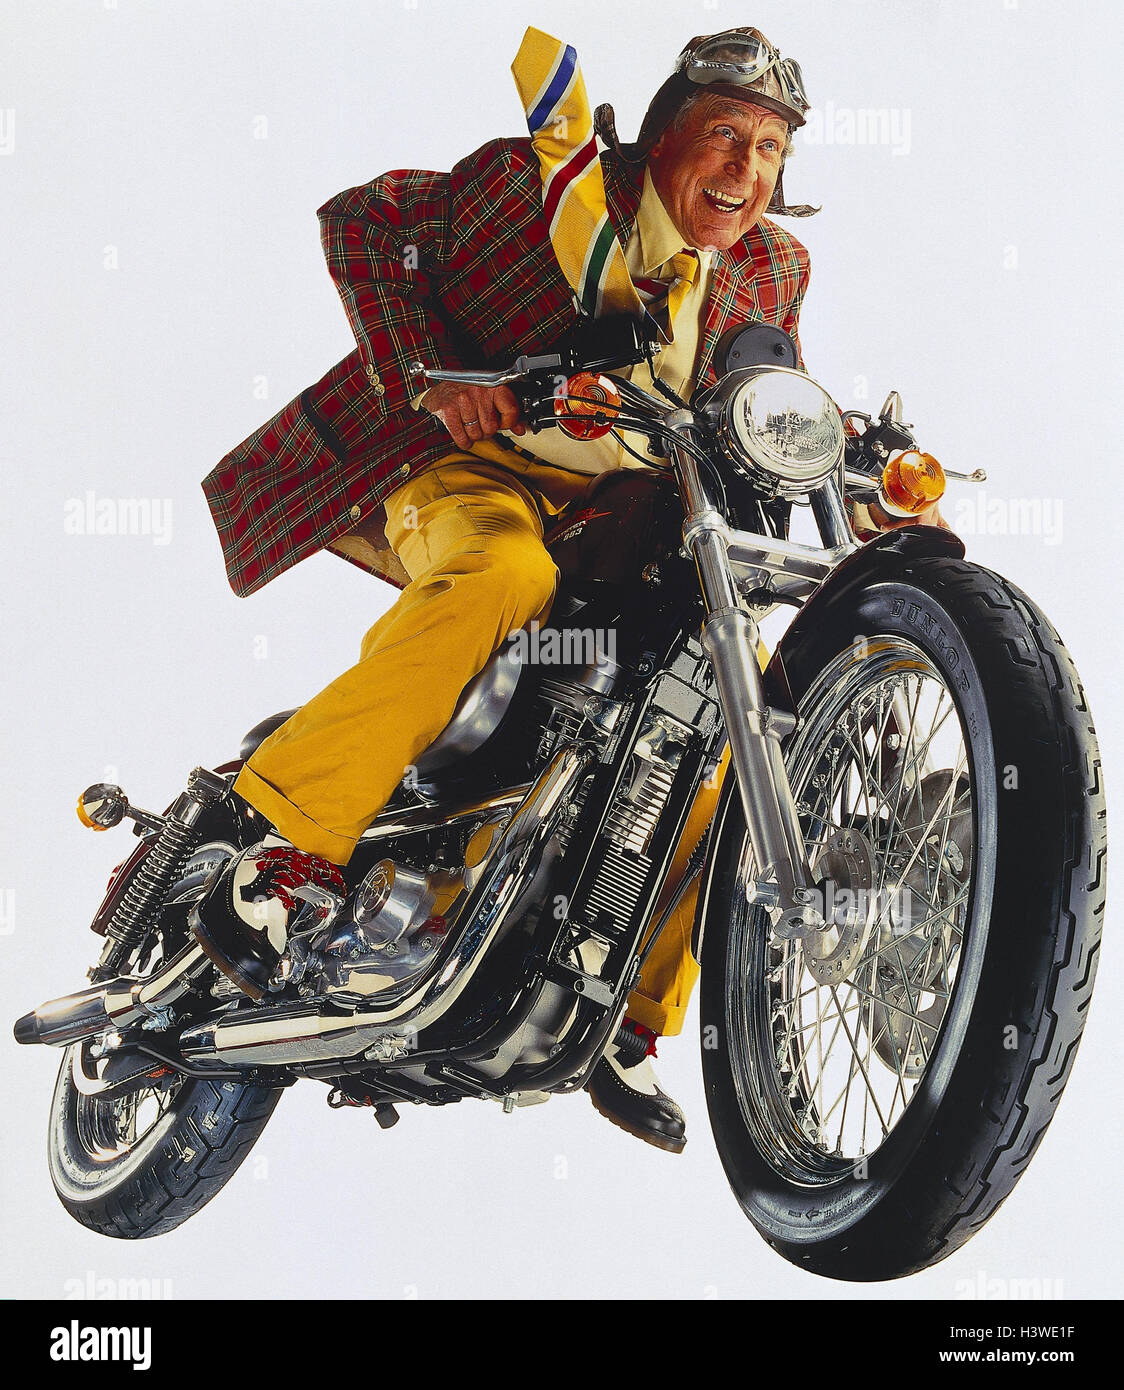 Senior, Man, Leather Ball Cap, Motorcycle, Laugh, Do Not Drive Freely For  Furniture Industry I. D Studio, Joy